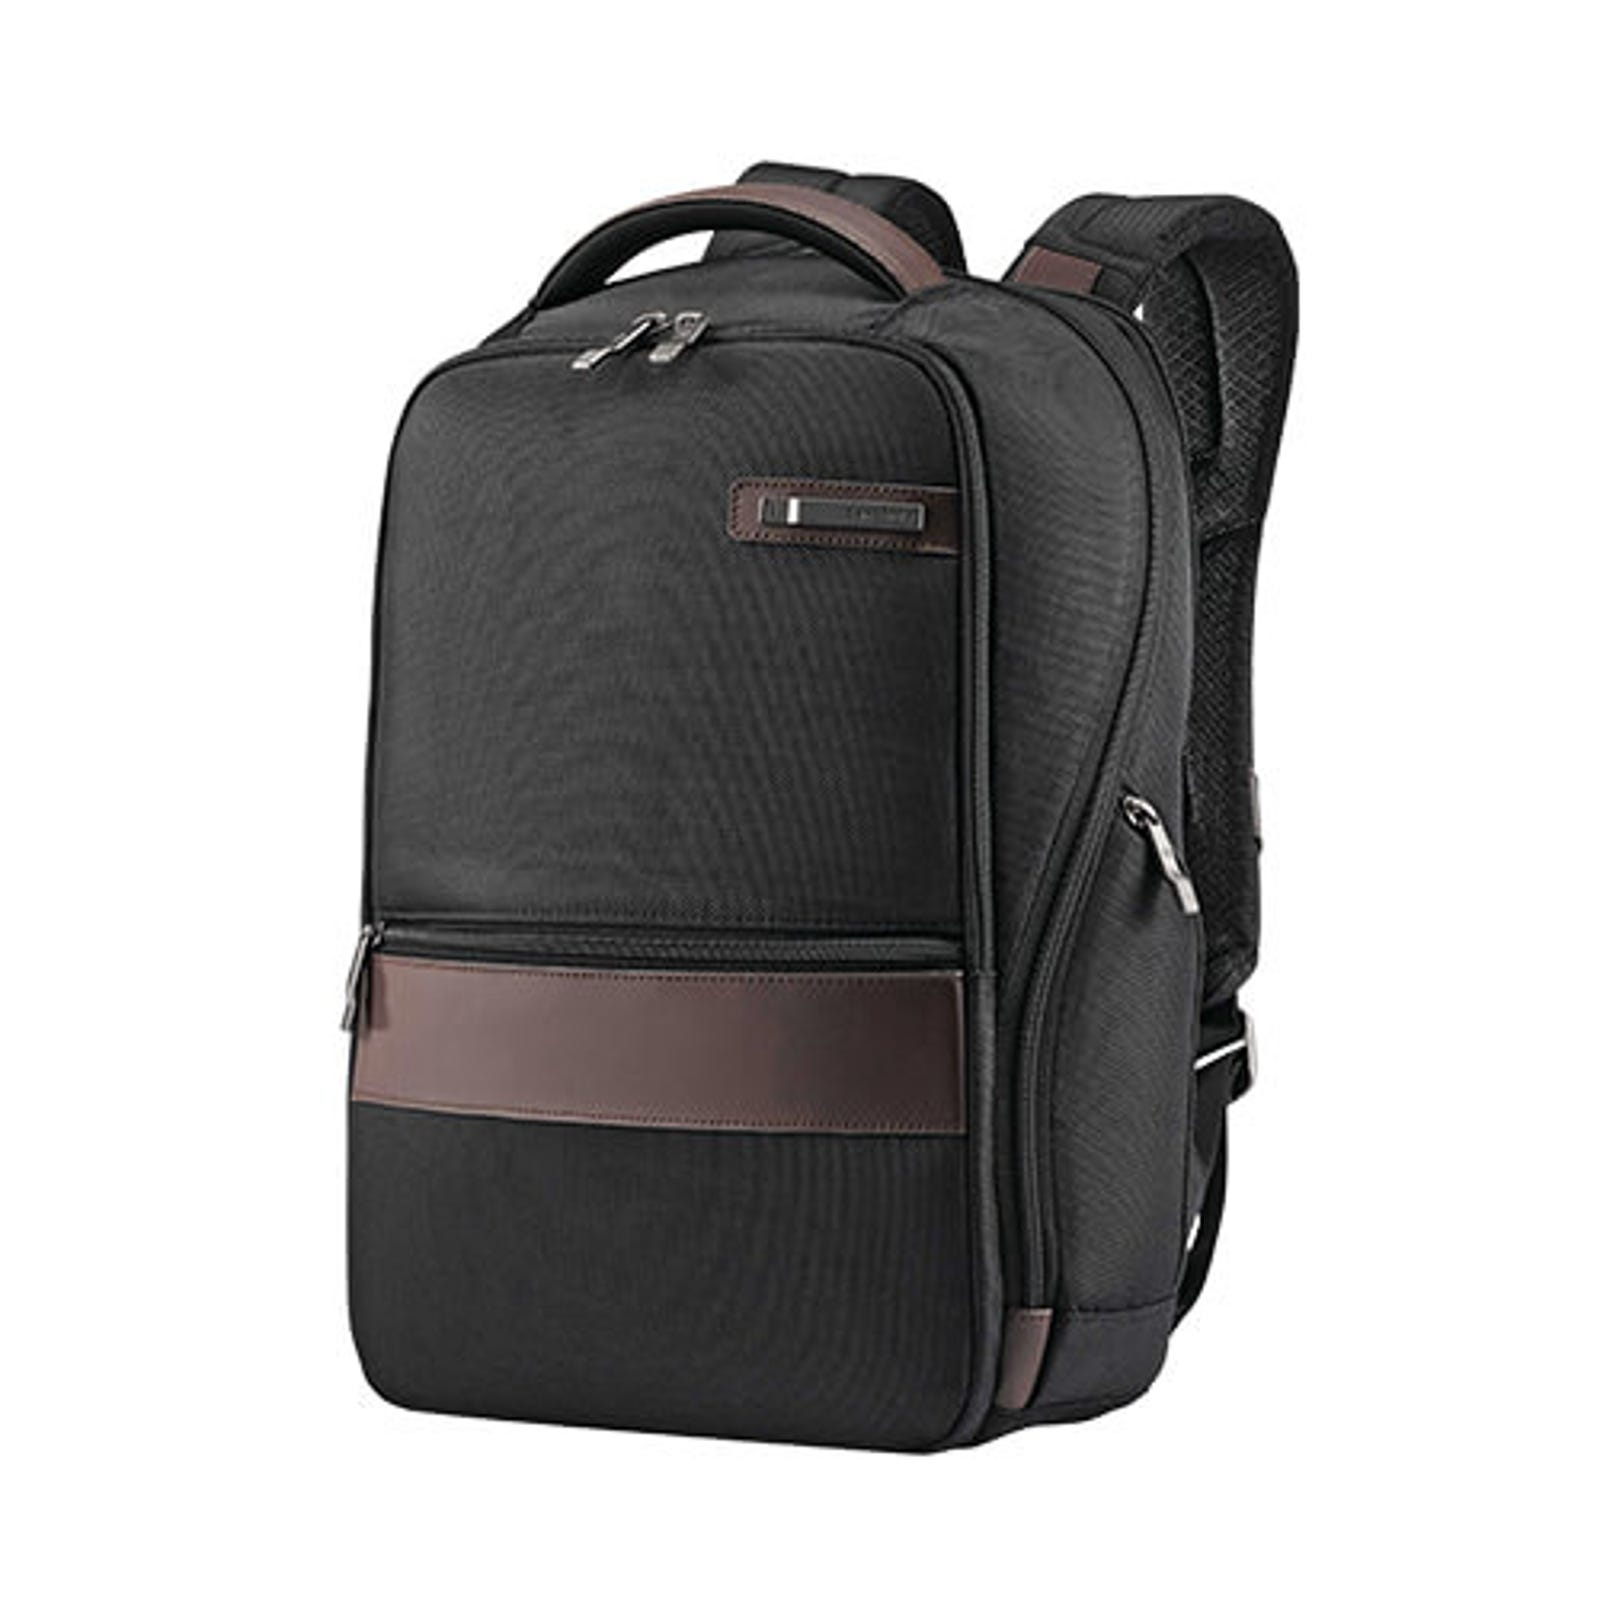 3c98b6081 Luggage, Suitcases, & Travel Bags   Best Buy Canada